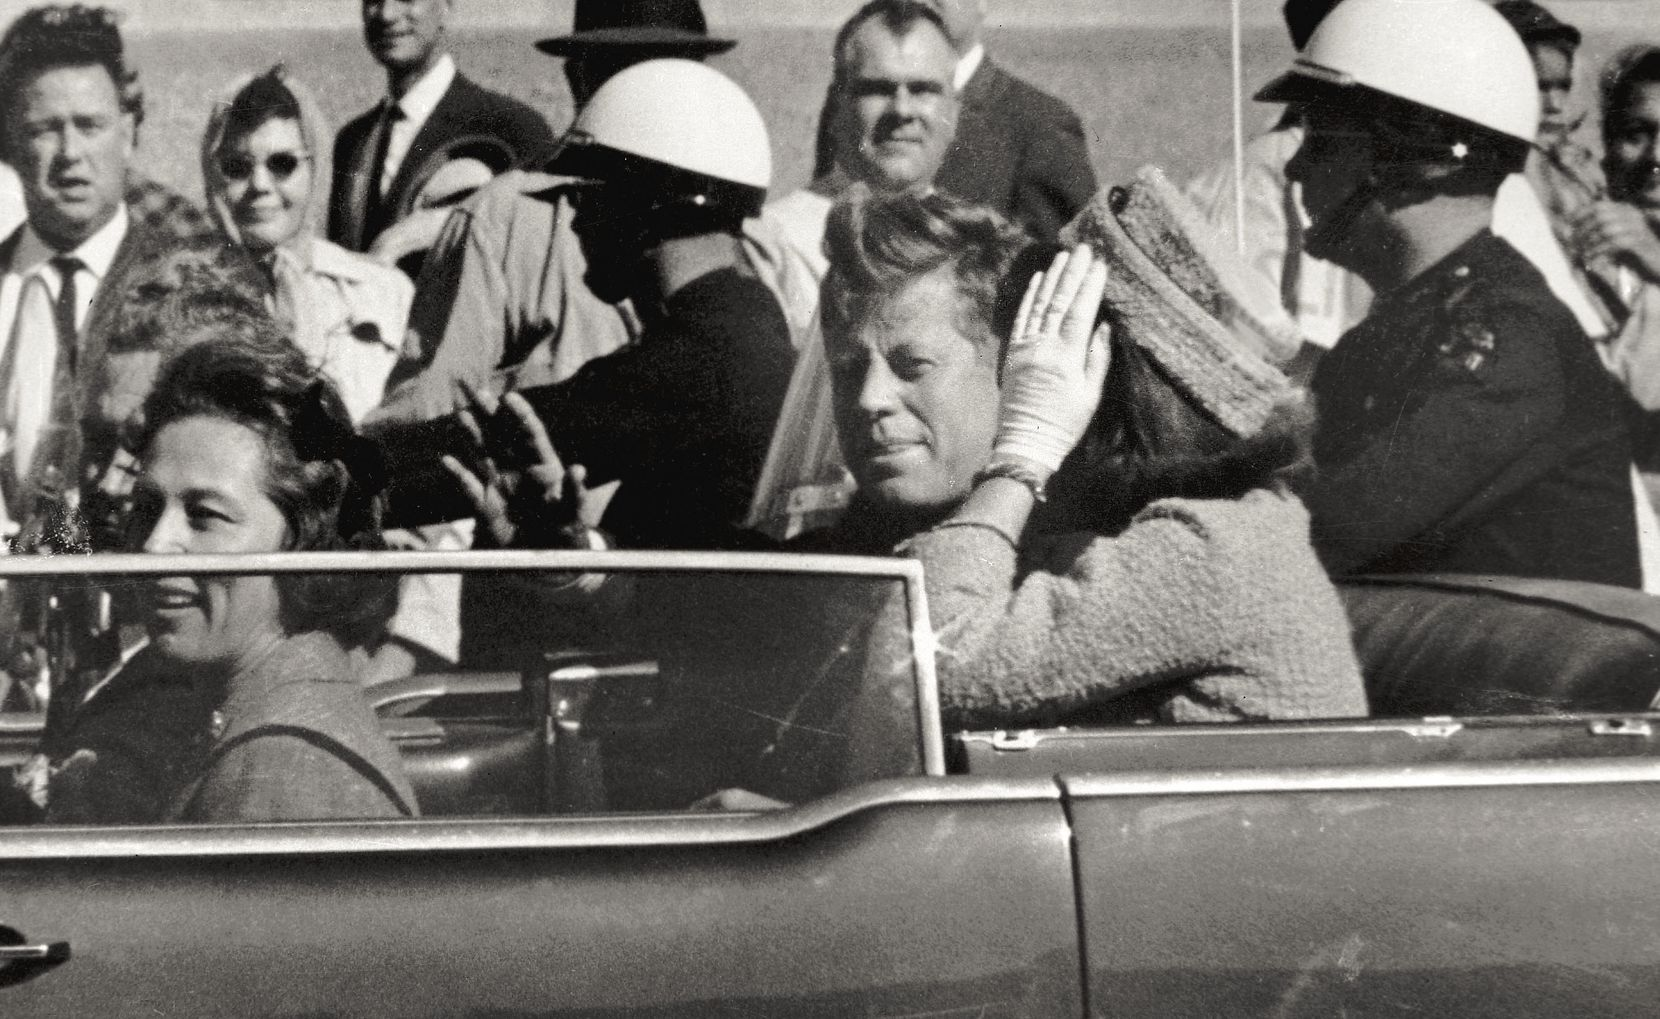 In this Nov. 22, 1963 file photo, President John F. Kennedy waves from his car in a motorcade approximately one minute before he was shot in Dallas. Riding with Kennedy are First Lady Jacqueline Kennedy, right, Nellie Connally, second from left, and her husband, Texas Gov. John Connally, far left. The National Archives has until Oct. 26, 2017, to disclose the remaining files related to Kennedy's assassination, unless President Donald Trump intervenes. (AP Photo/Jim Altgens, File)